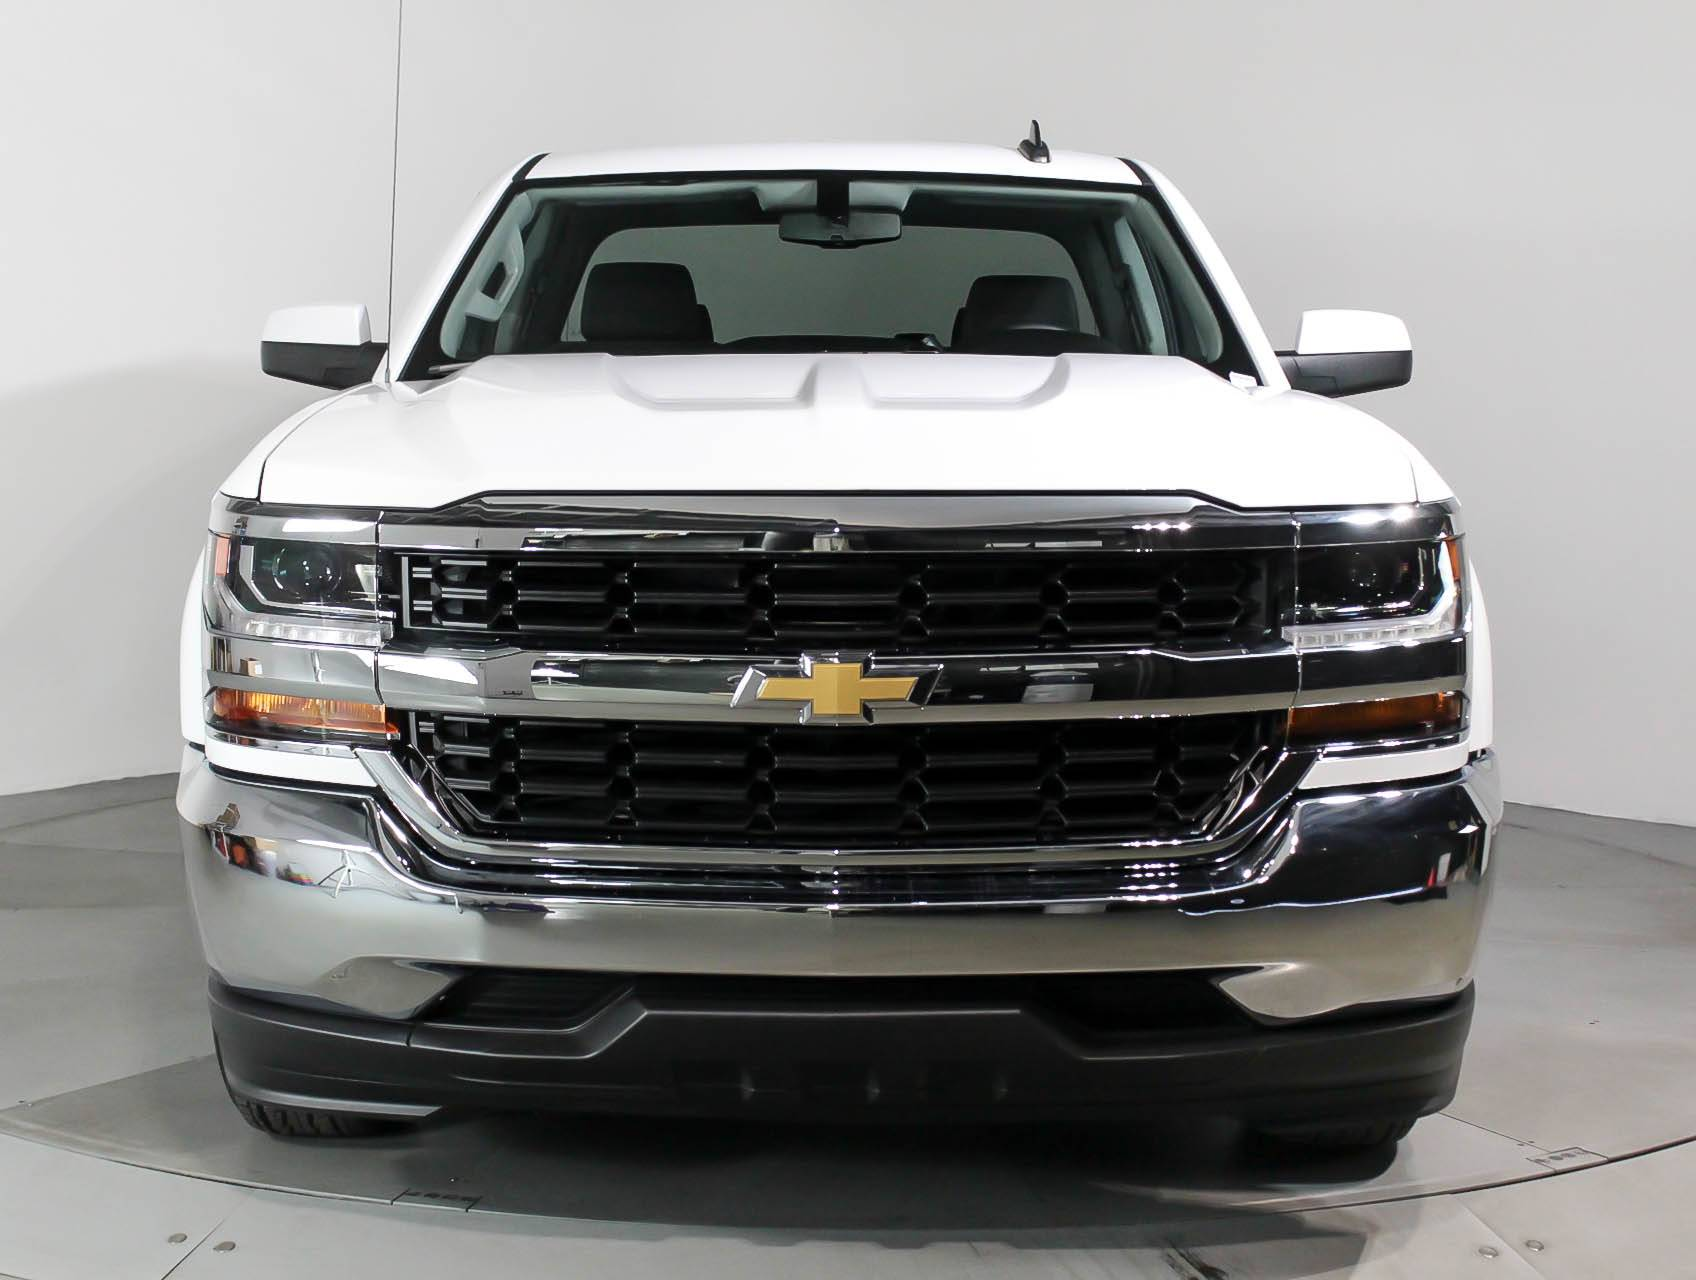 chevrolet used ext inventory vehiclesearchresults gba in miami a tahoe vehicle chevy photo fl new buy